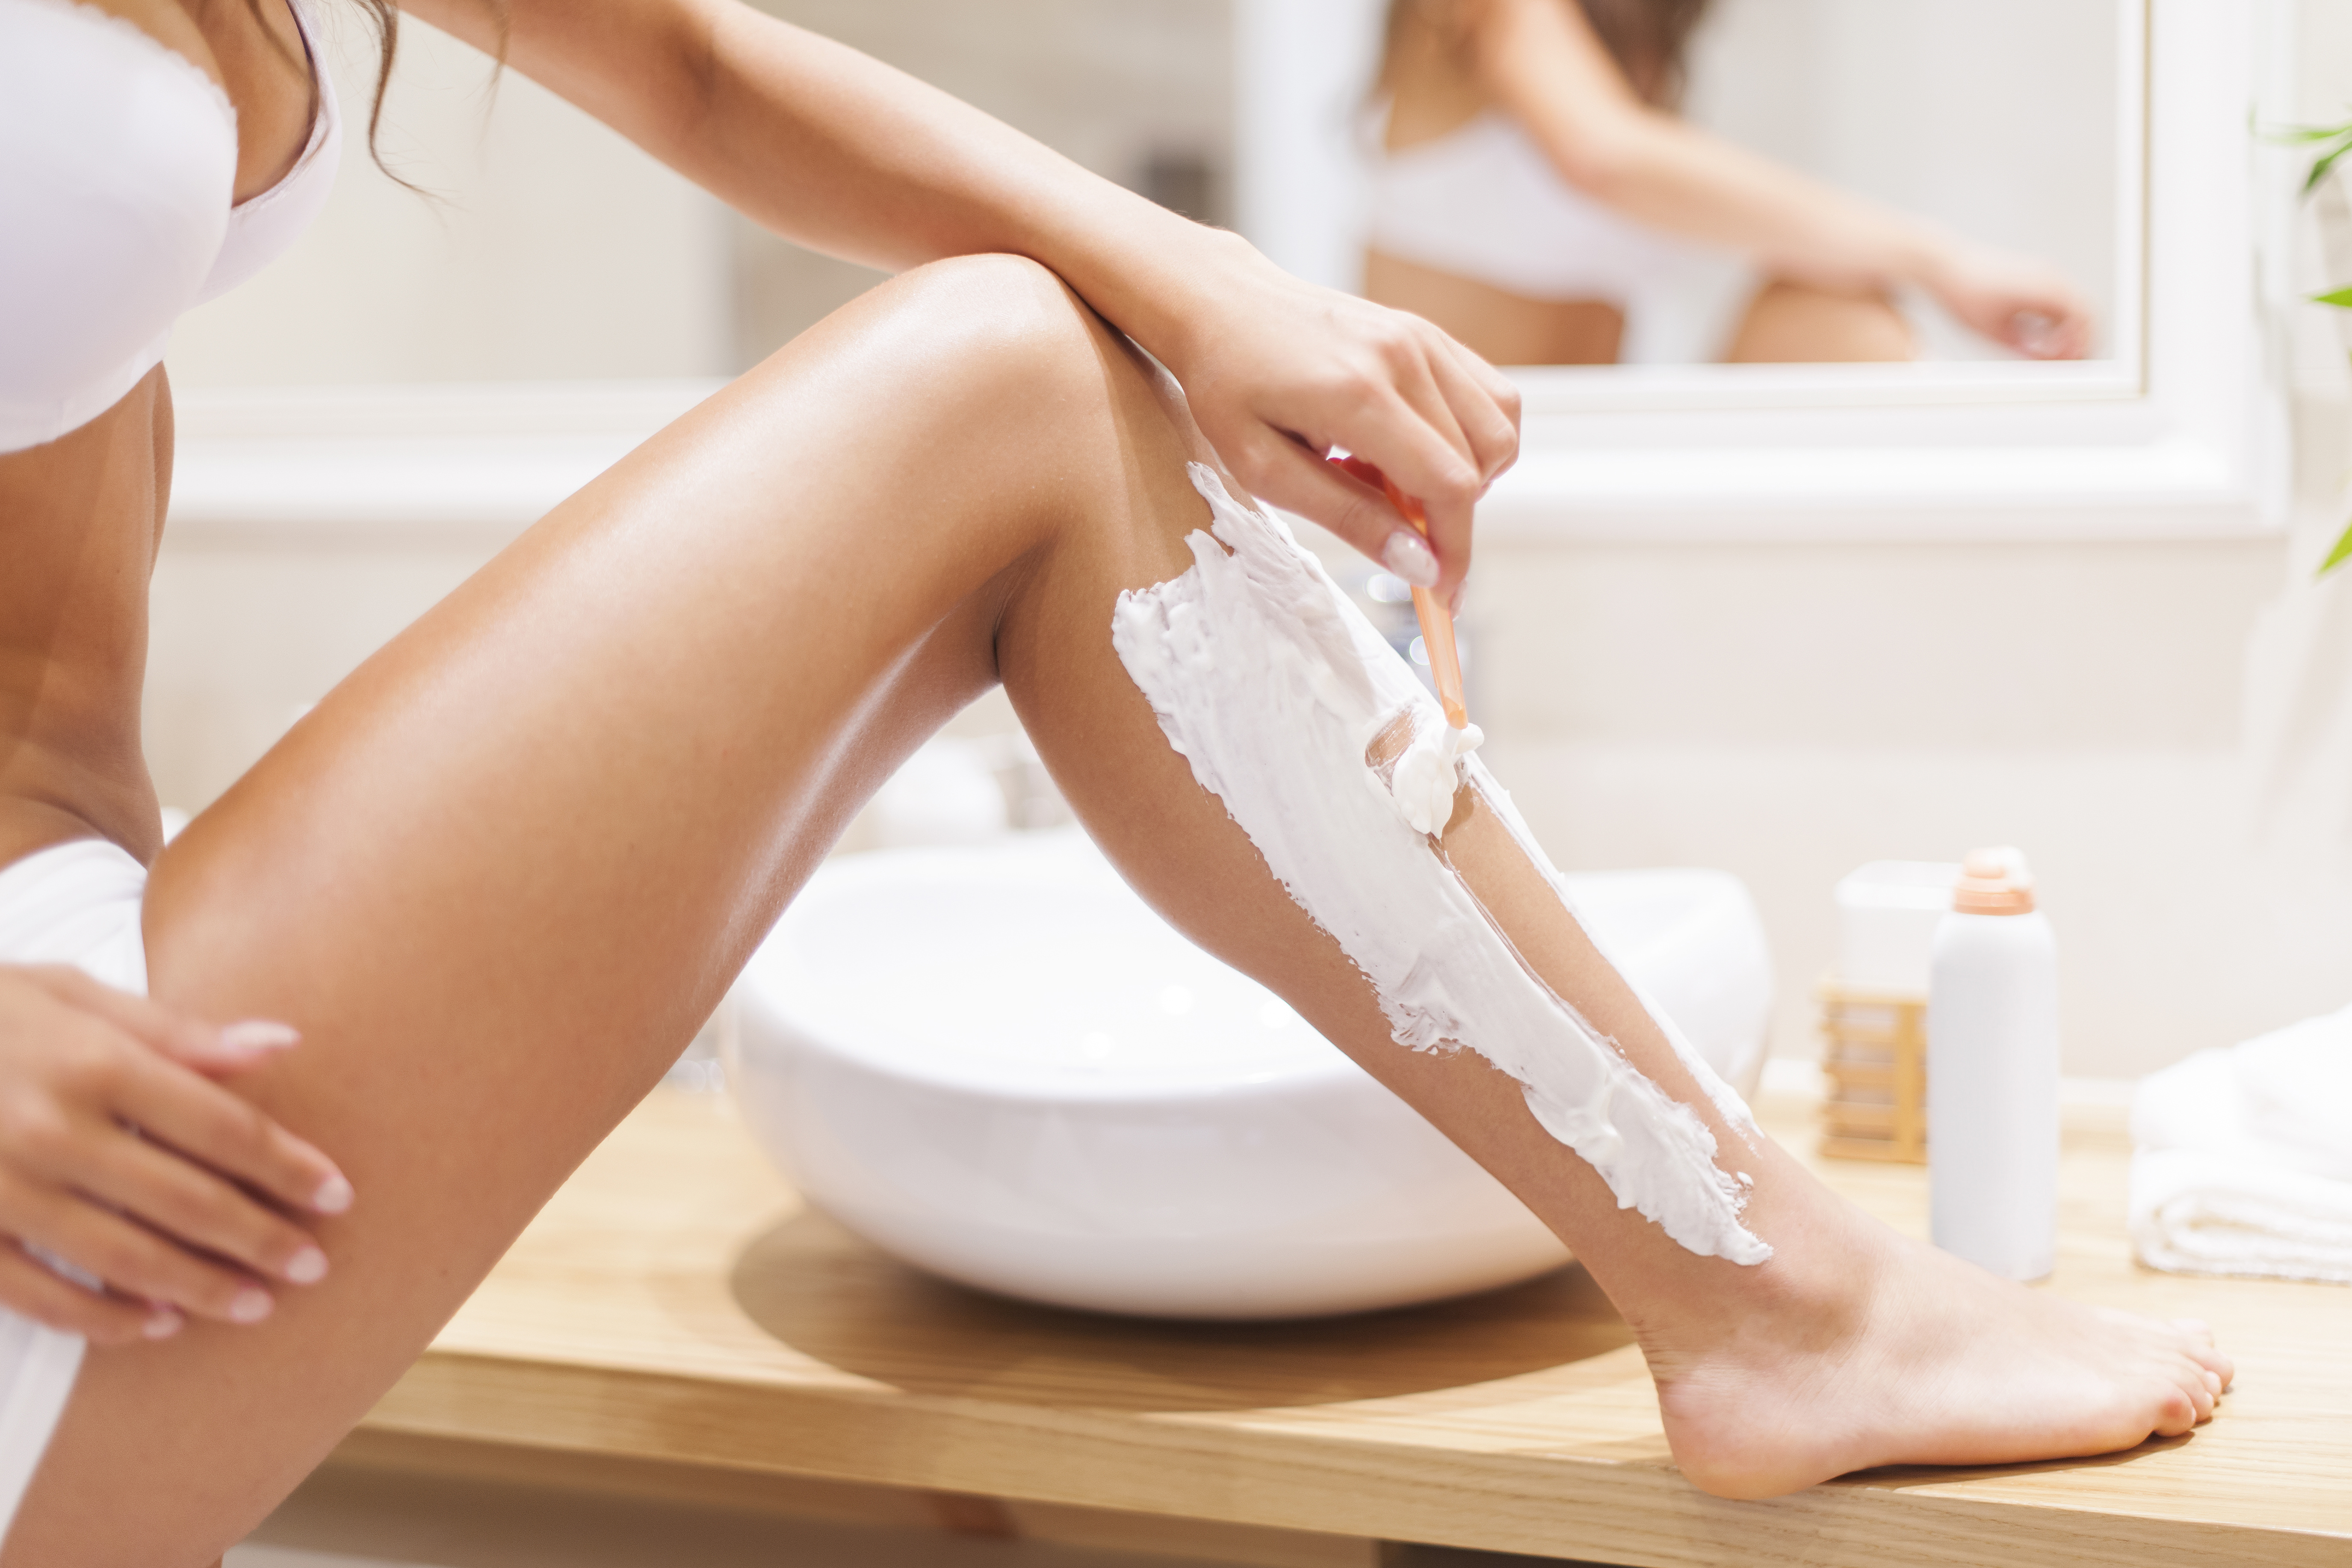 Close up of woman shaving legs in bathroom